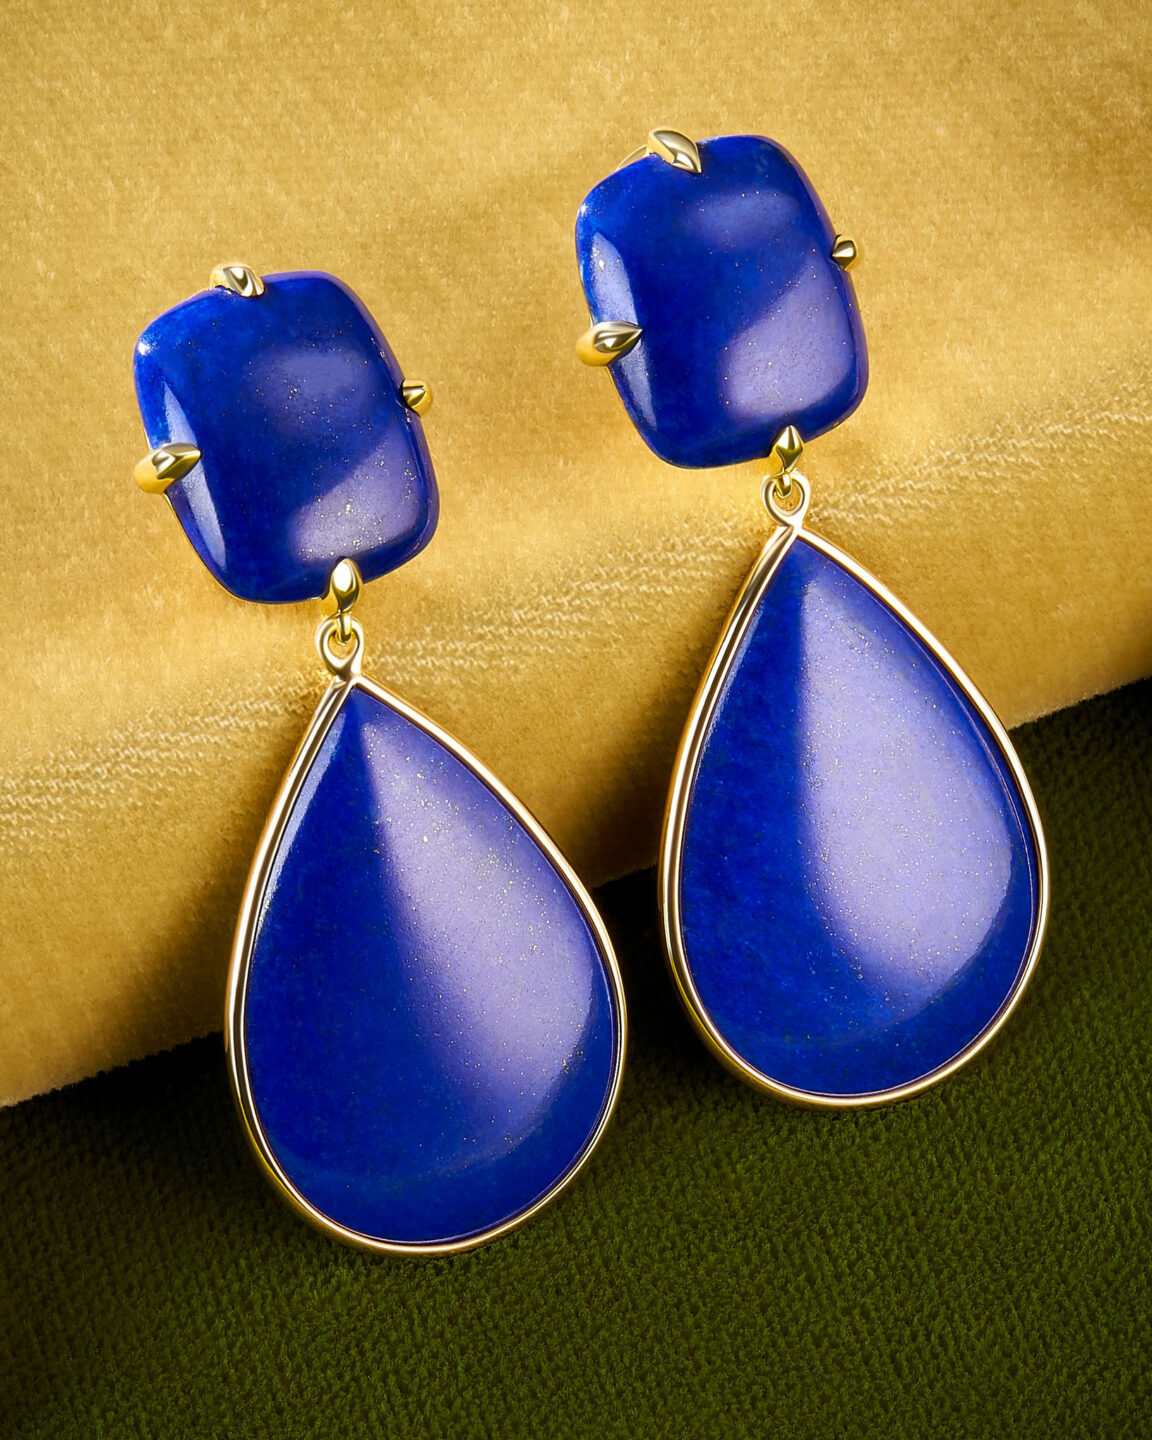 mish_products_earrings_Roadster-Lapis-ER-5